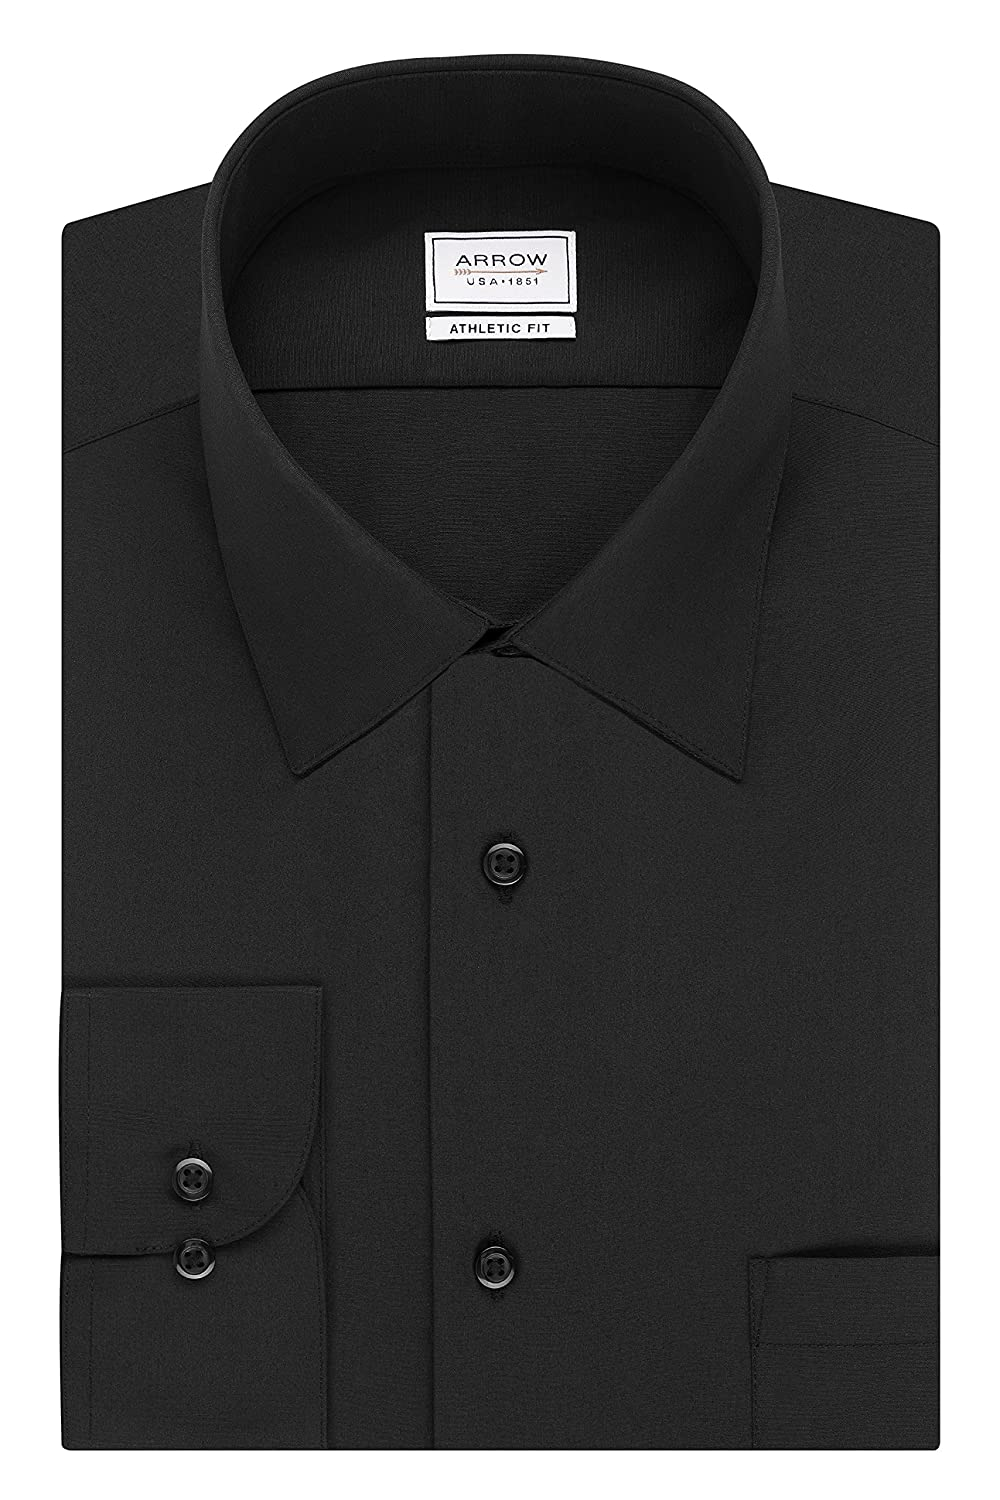 ef8f0890 Spread collar. Regular cuff. Pocket at chest. Athletic fit dress shirts  have fuller sleeves, a fuller chest, a contoured cut, and are slimmer at  the waist.